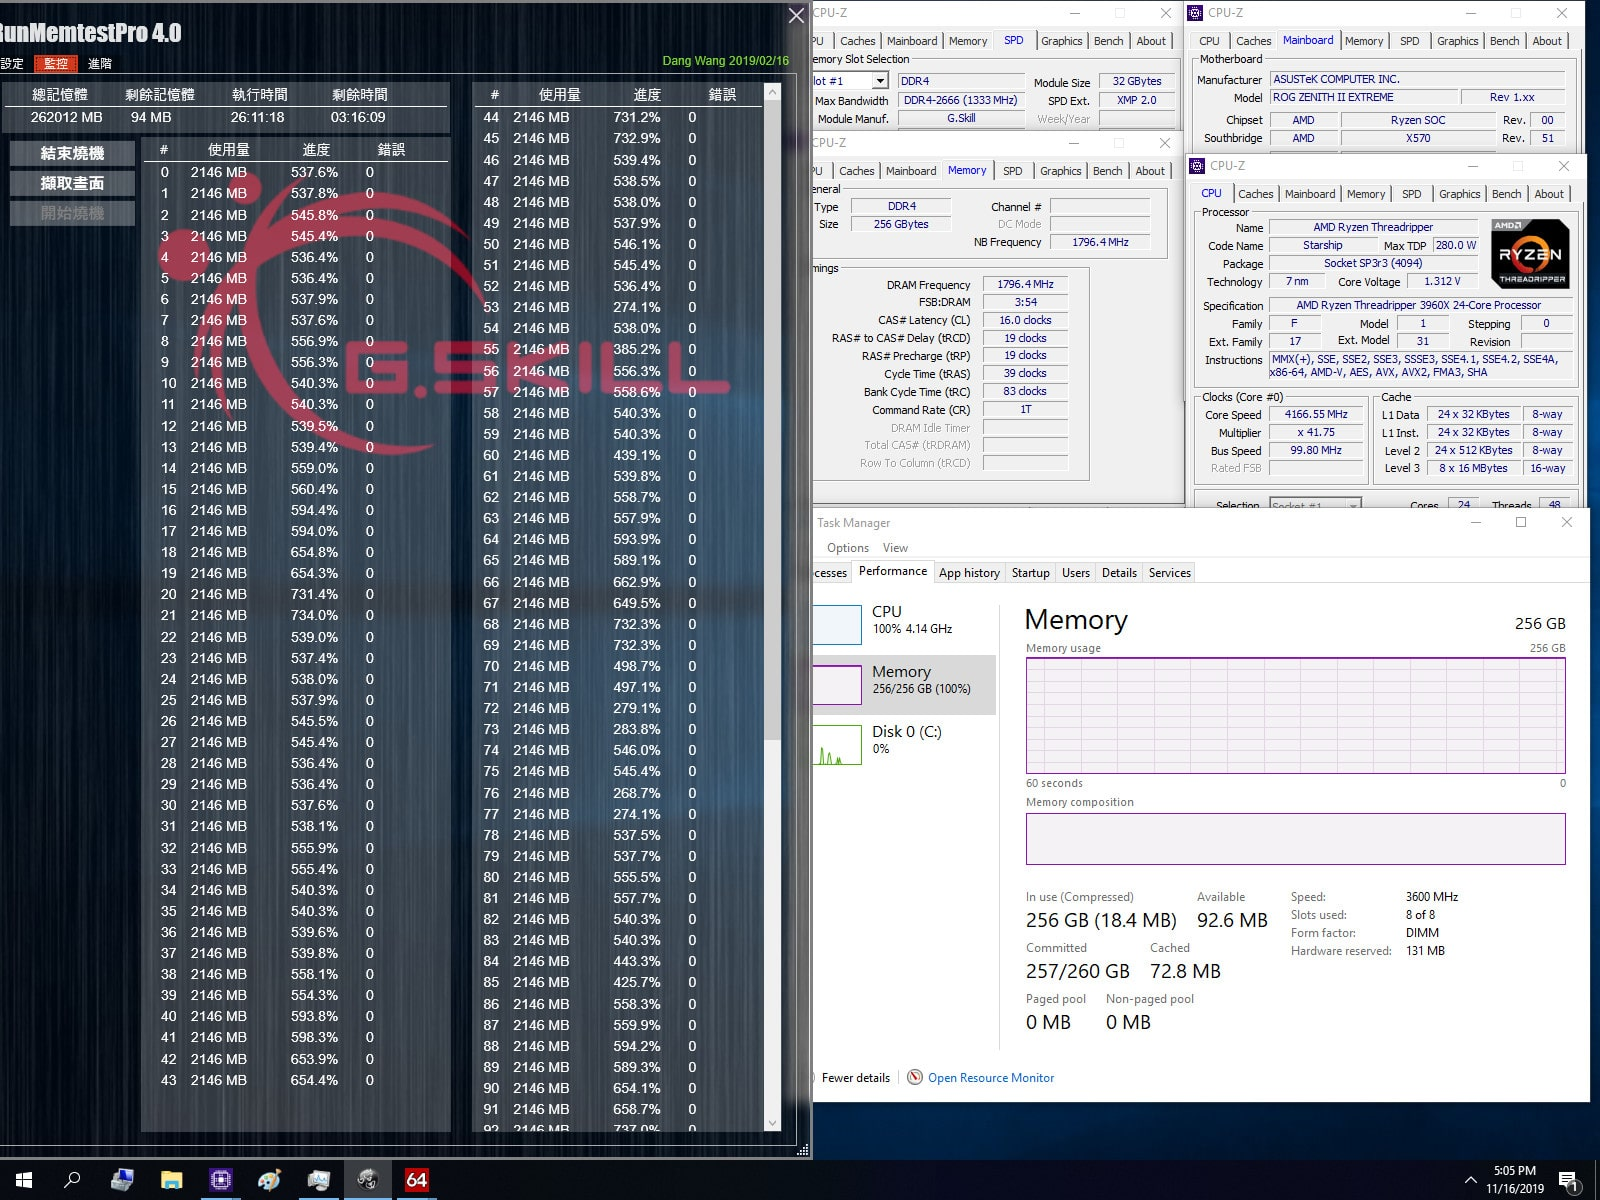 G.Skill AMD DDR4 3600 MHz CL14-15-15-35